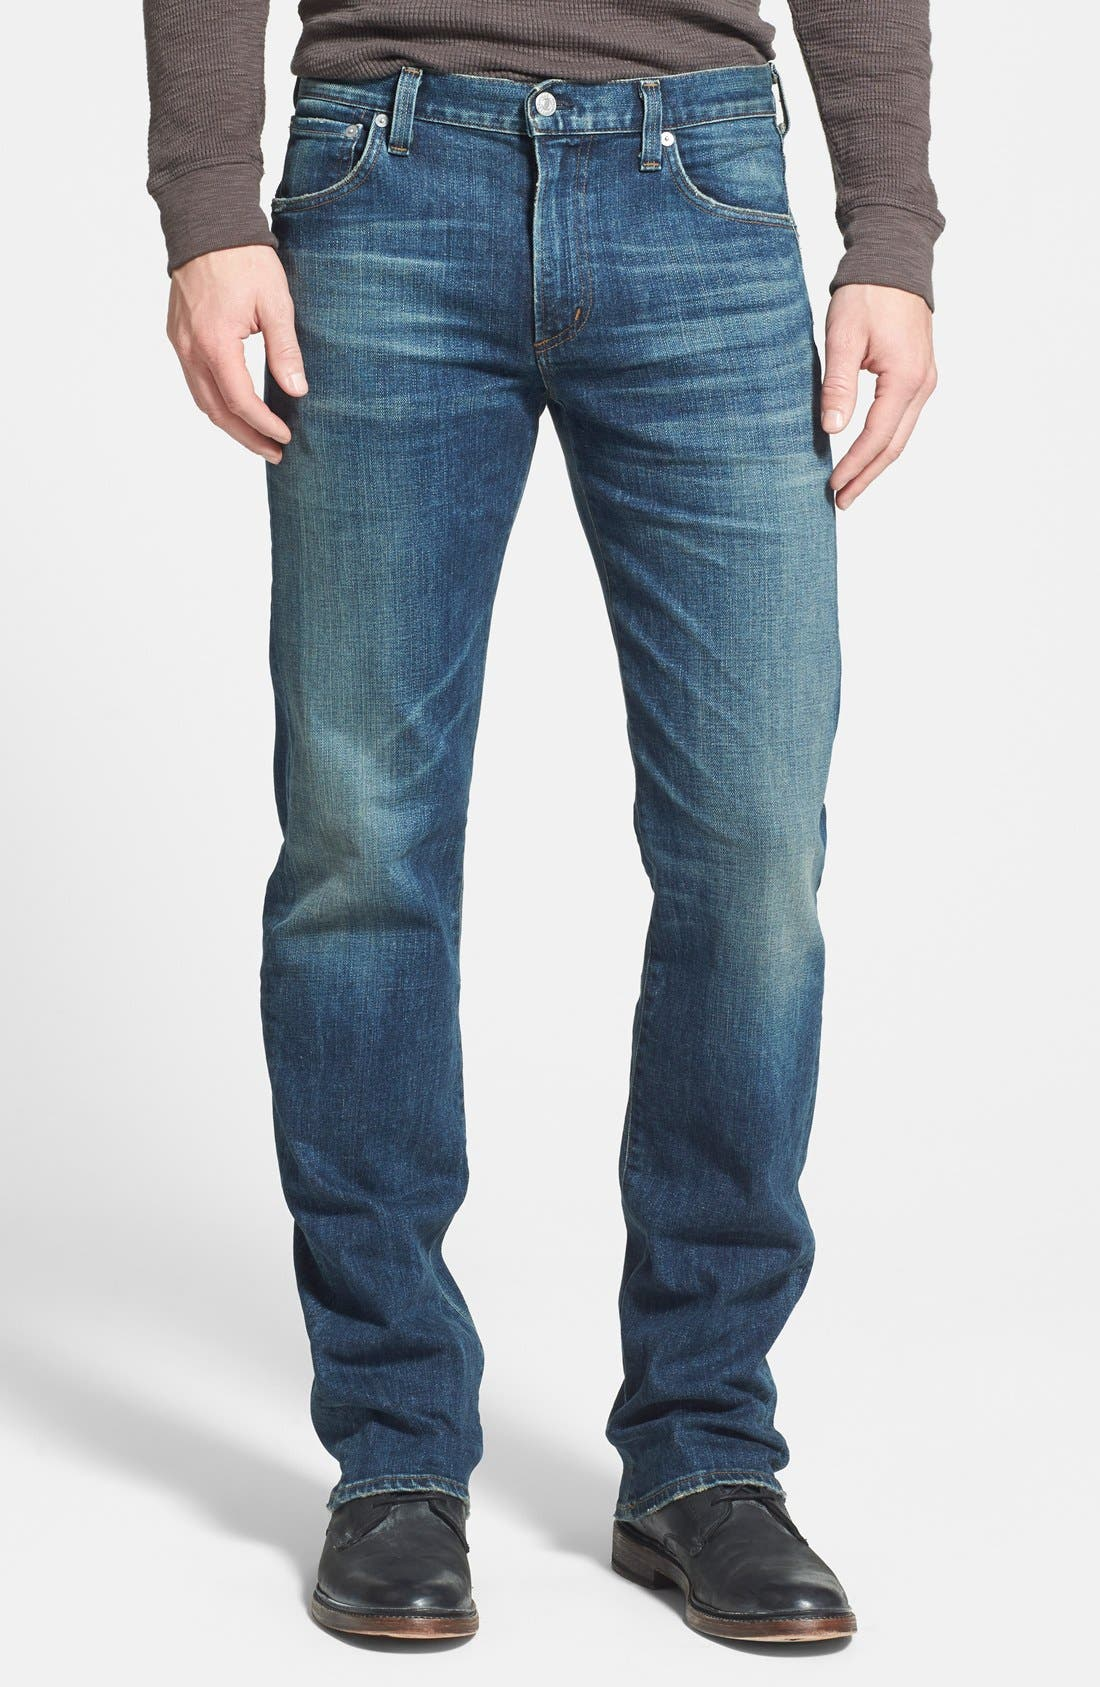 Alternate Image 1 Selected - Citizens of Humanity 'Sid' Classic Straight Leg Jeans (Morrison)